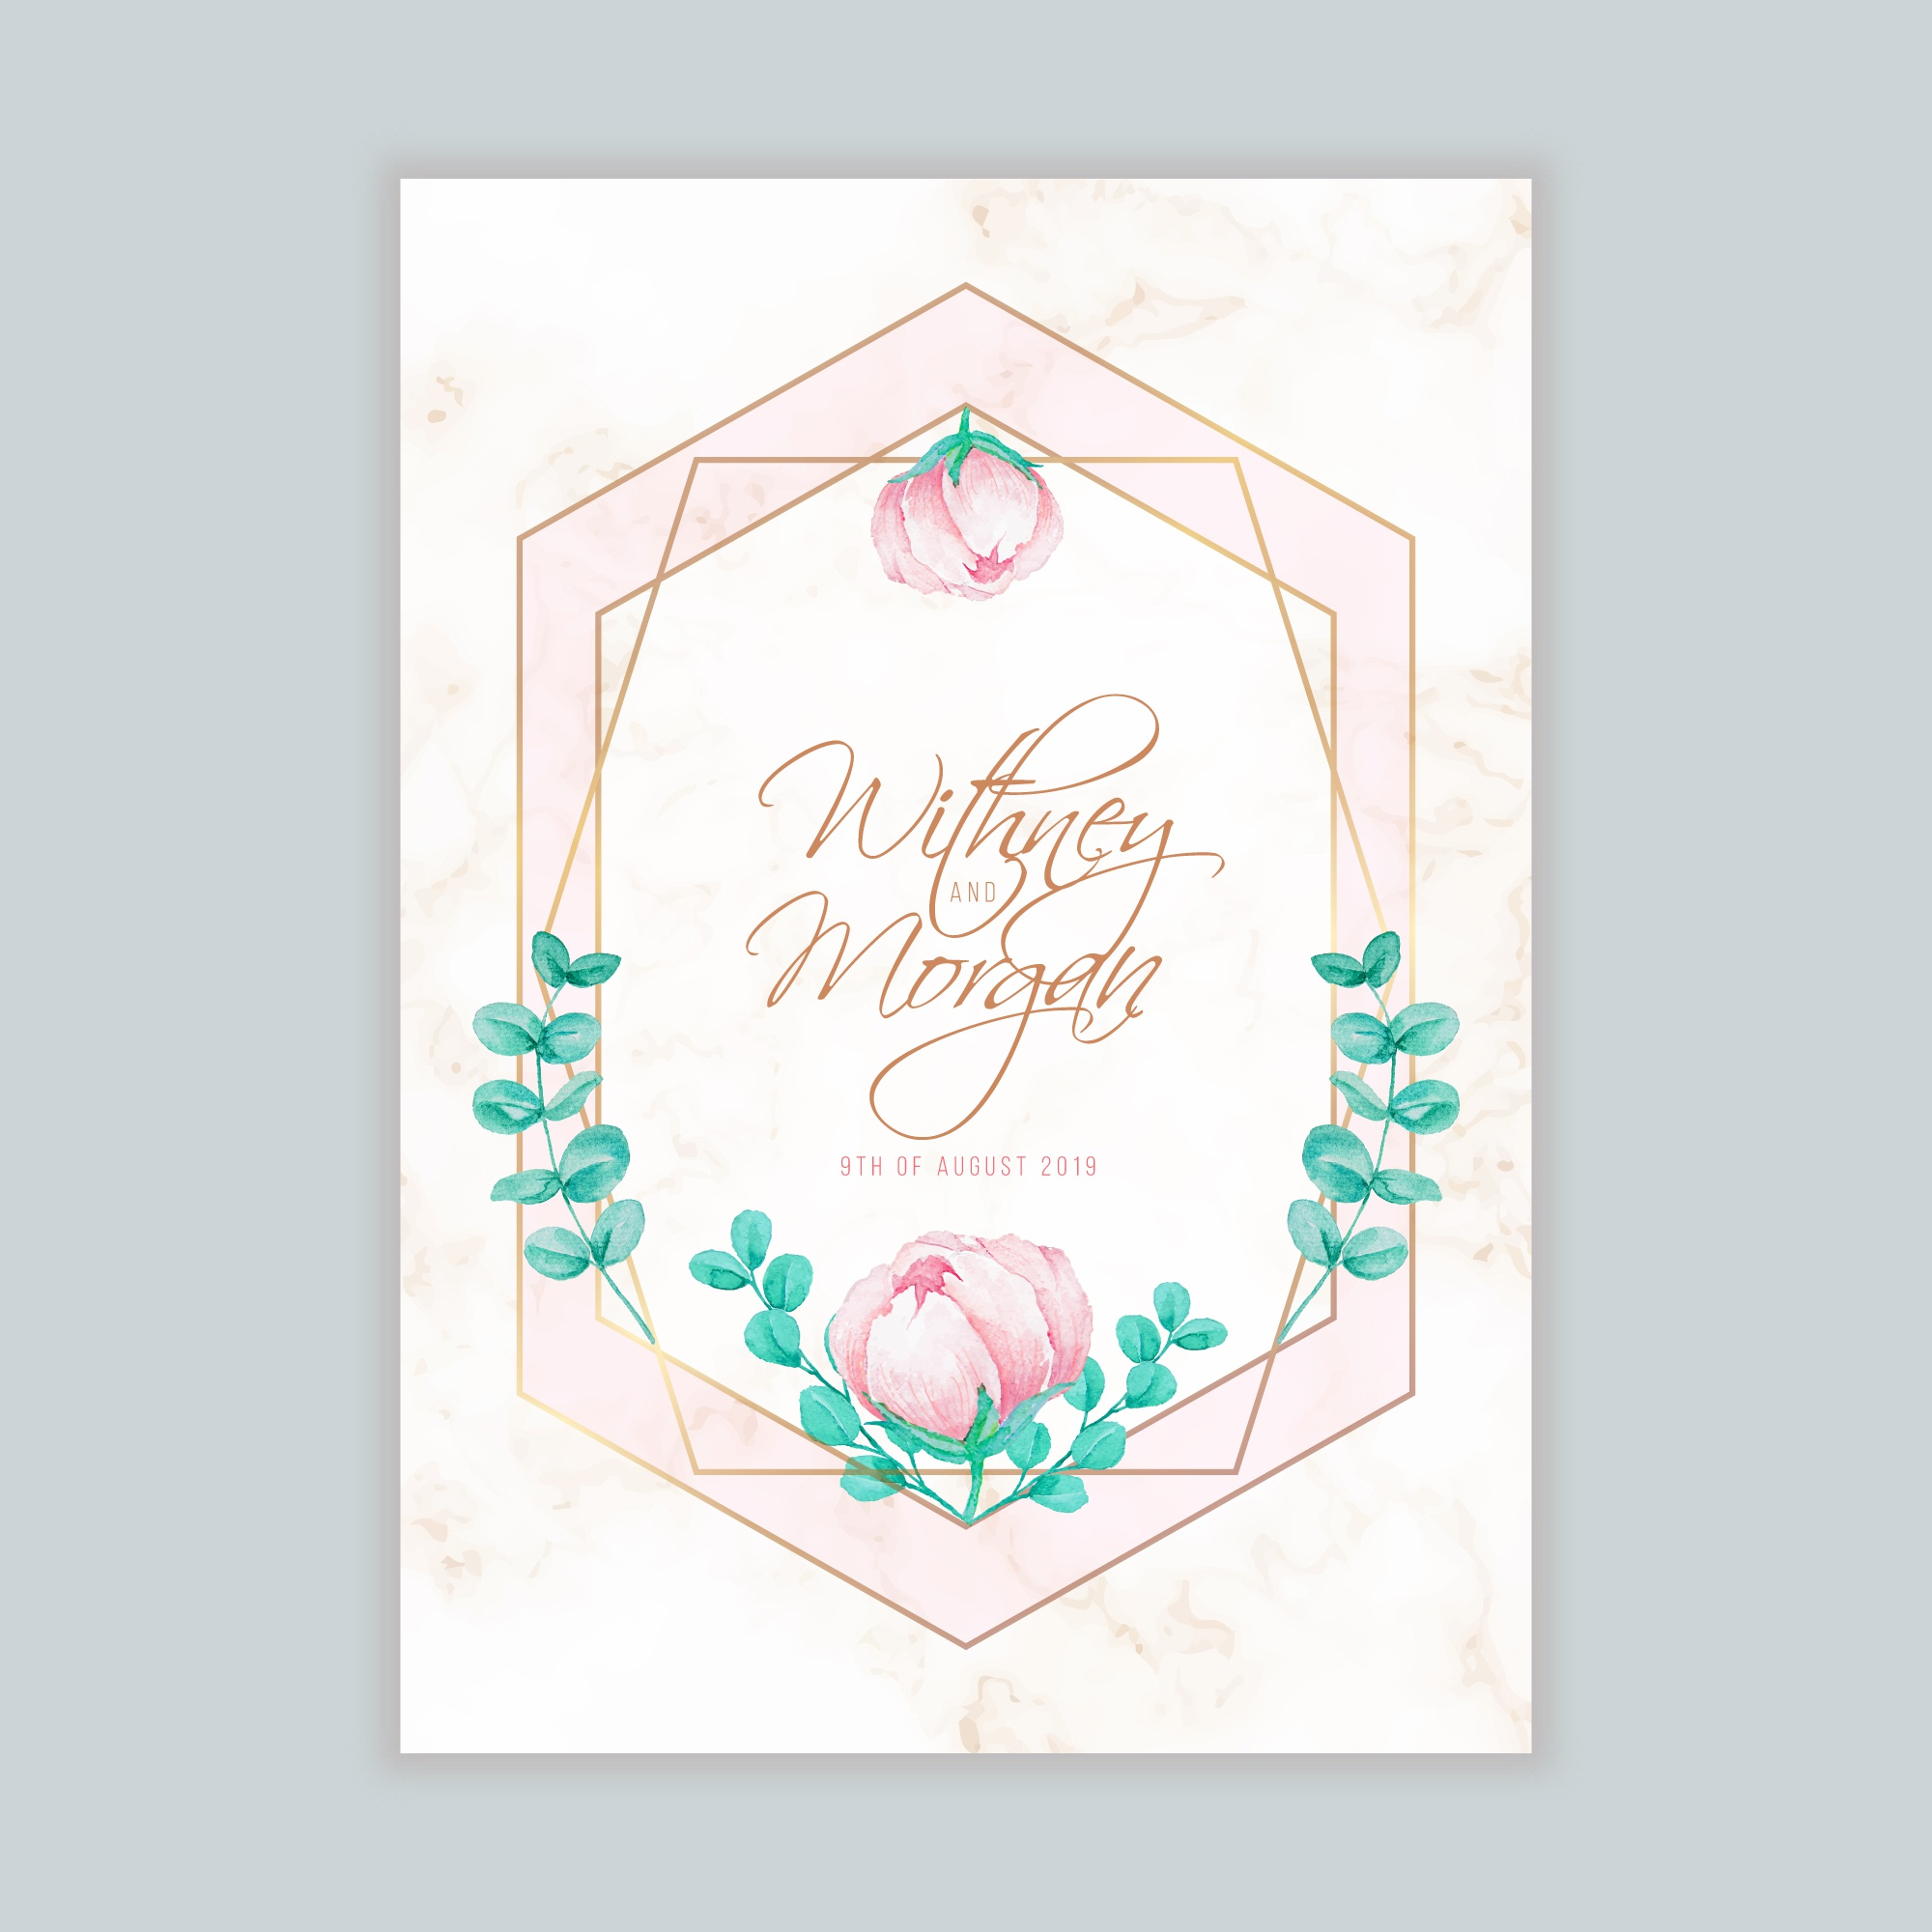 Wedding Invitation with Watercolor Floral and Geometric Frame